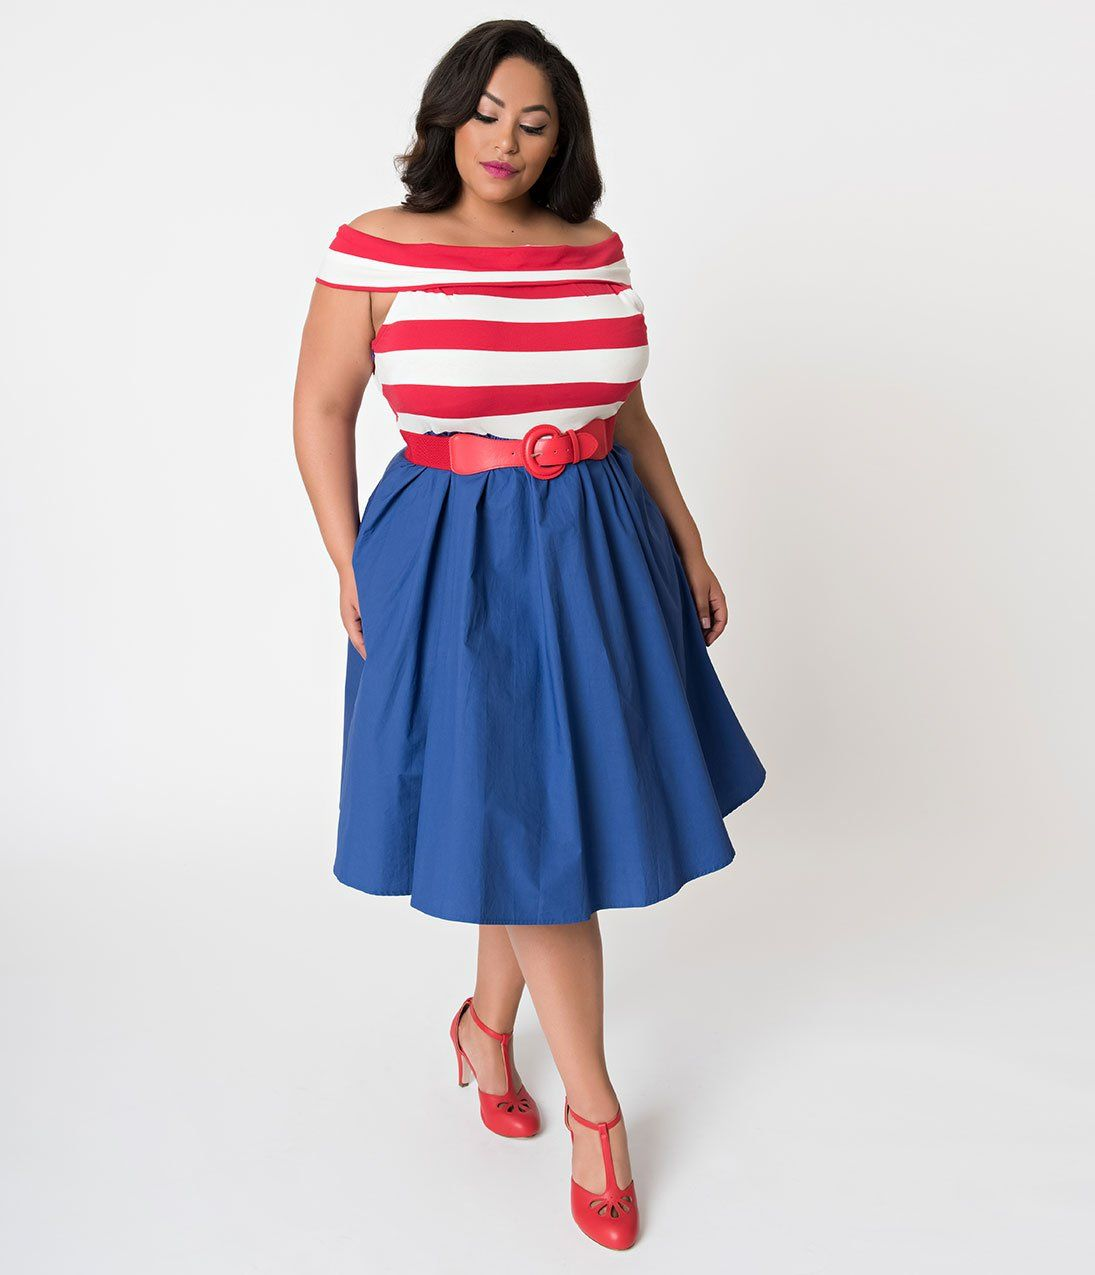 19+ Plus size red white and blue dress ideas in 2021